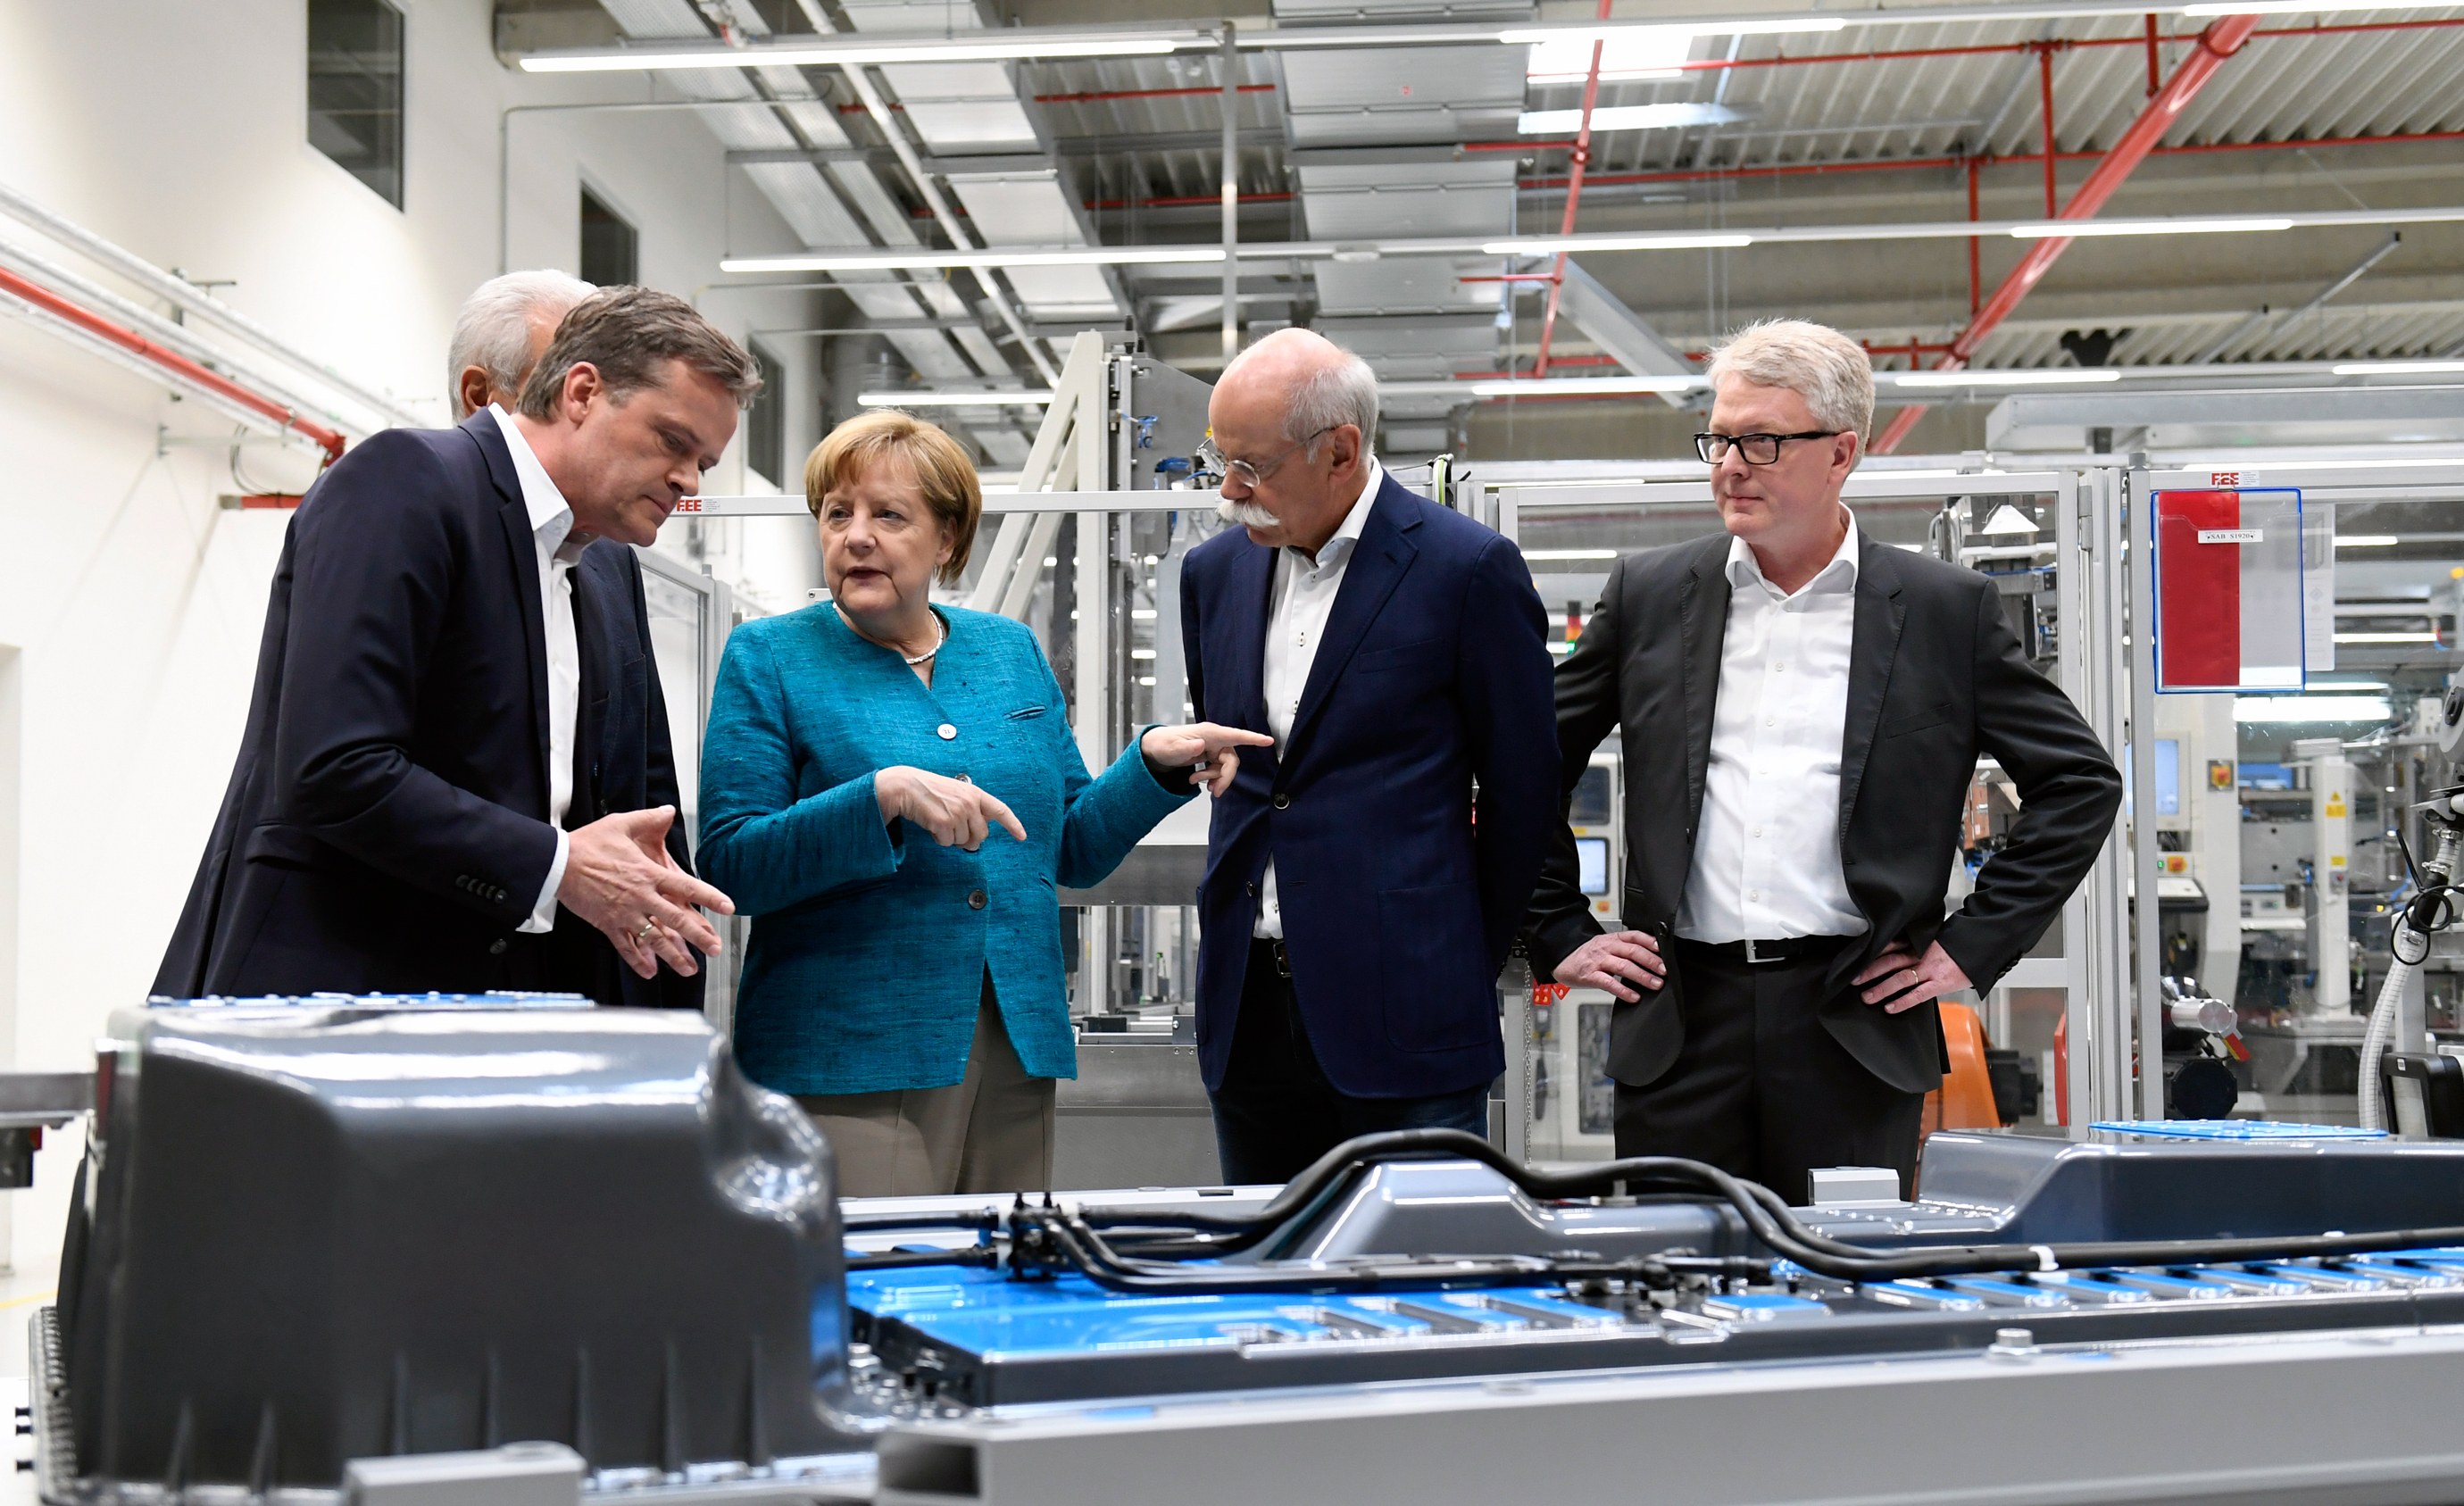 German chancellor Angela Merkel visits Accumotive's plant in Kamenz, Germany.